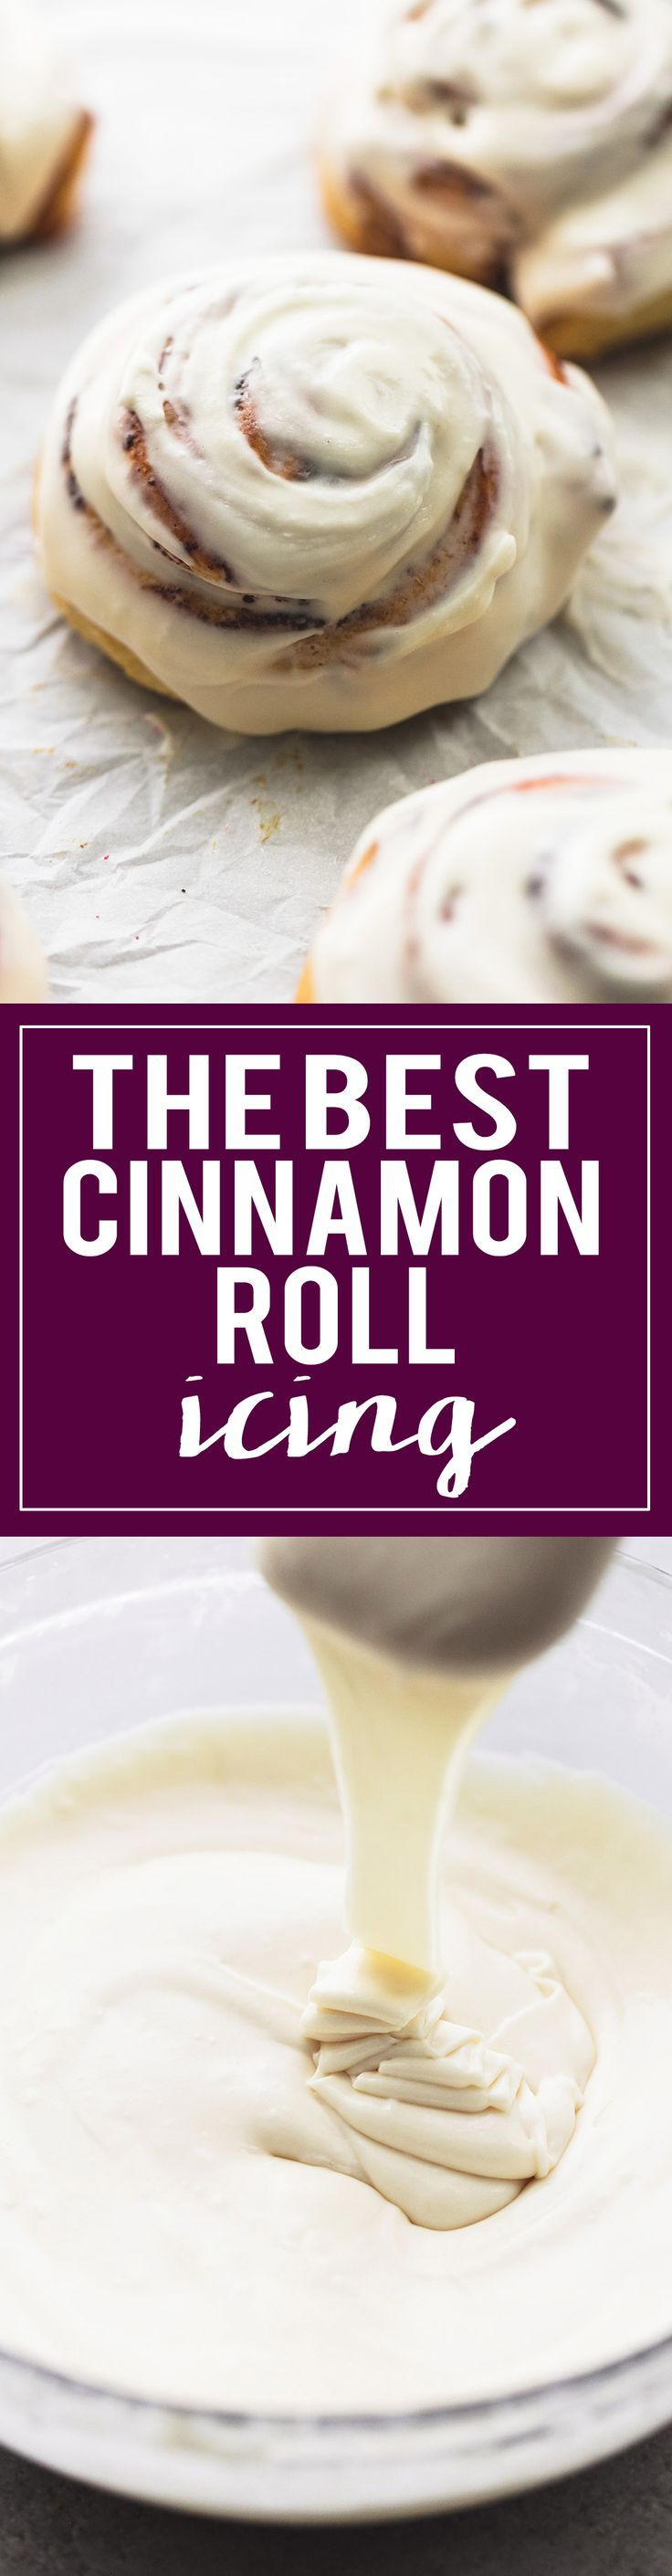 The BEST Cinnamon Roll Icing ever made in 10 minutes with just 5 ingredients and one key step that makes it BETTER than cinnabon!